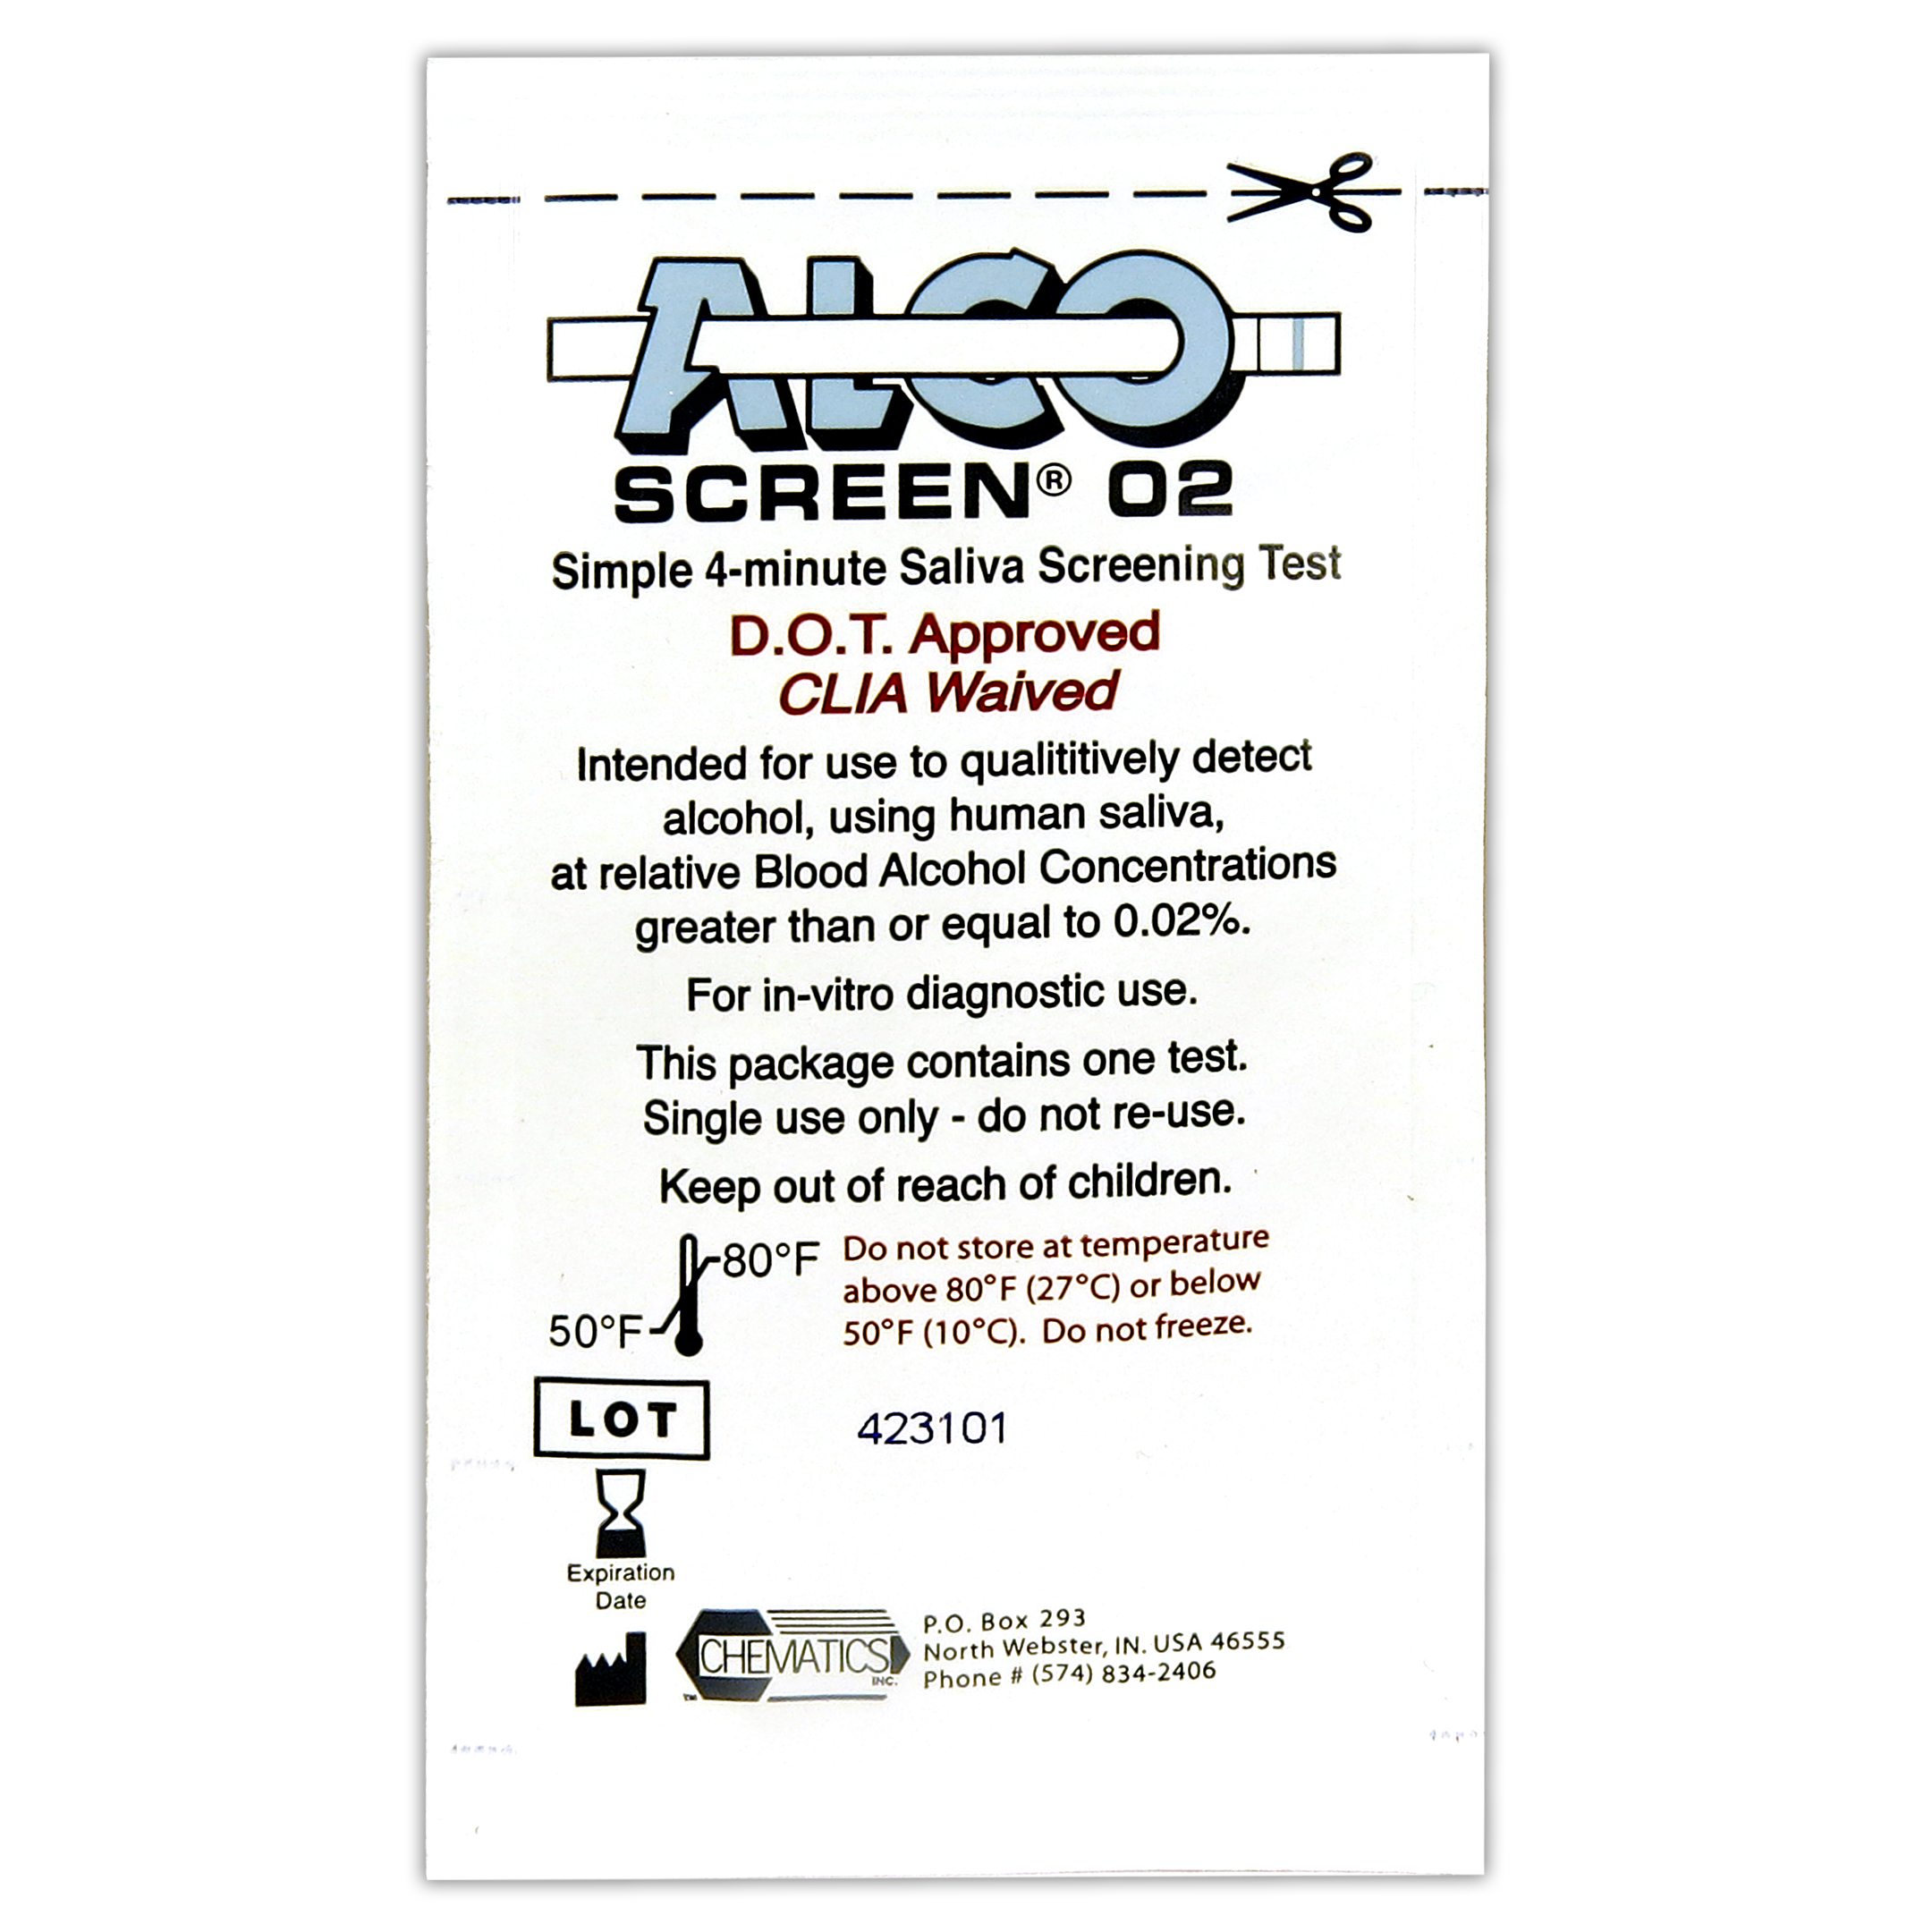 Alco Screen 02 Saliva Test DOT Approved